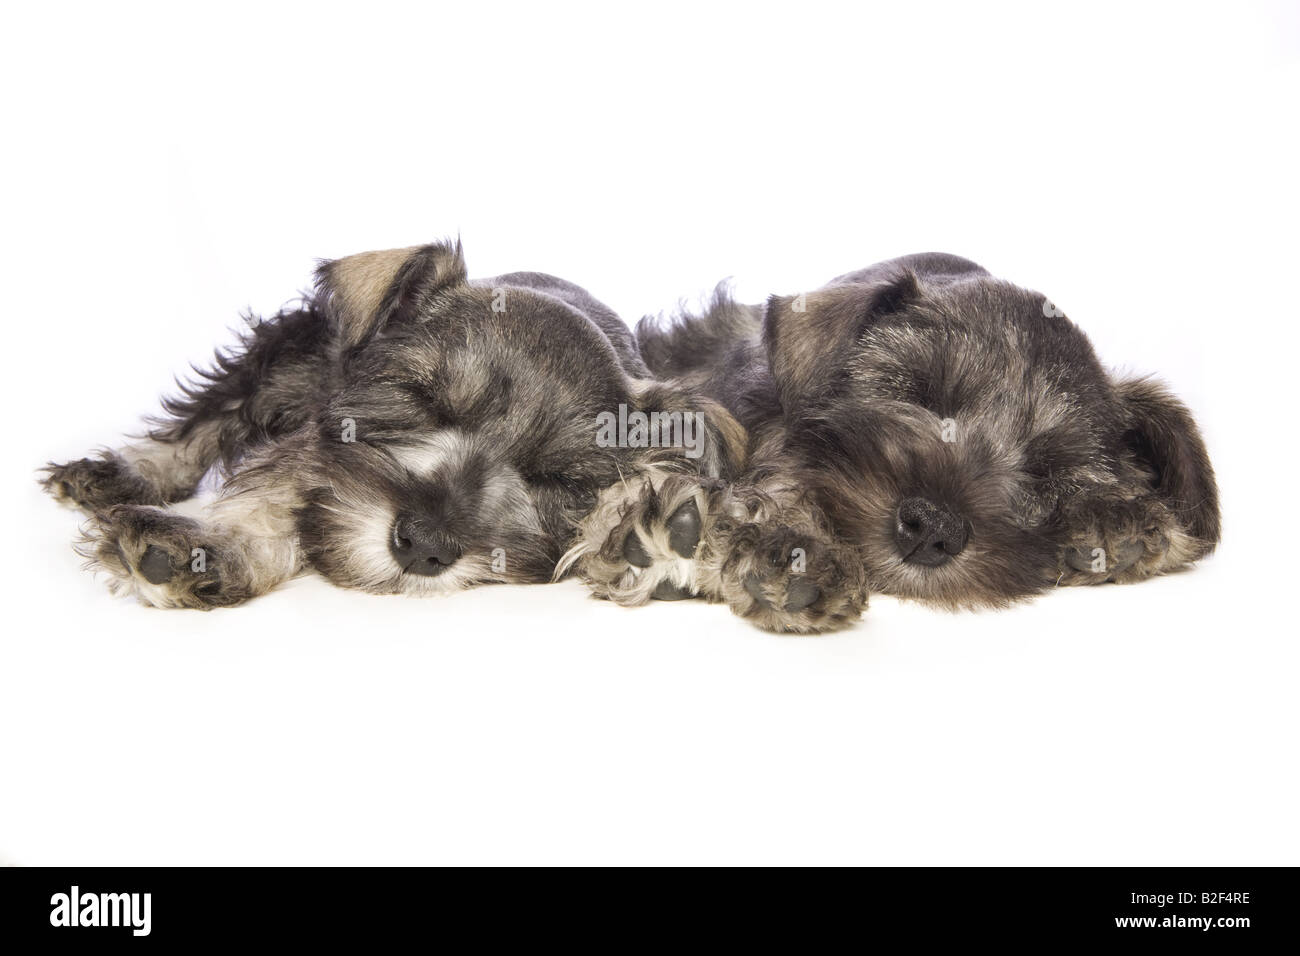 Two Adorable Miniature Schnauzer puppies lying down asleep isolated on white background - Stock Image